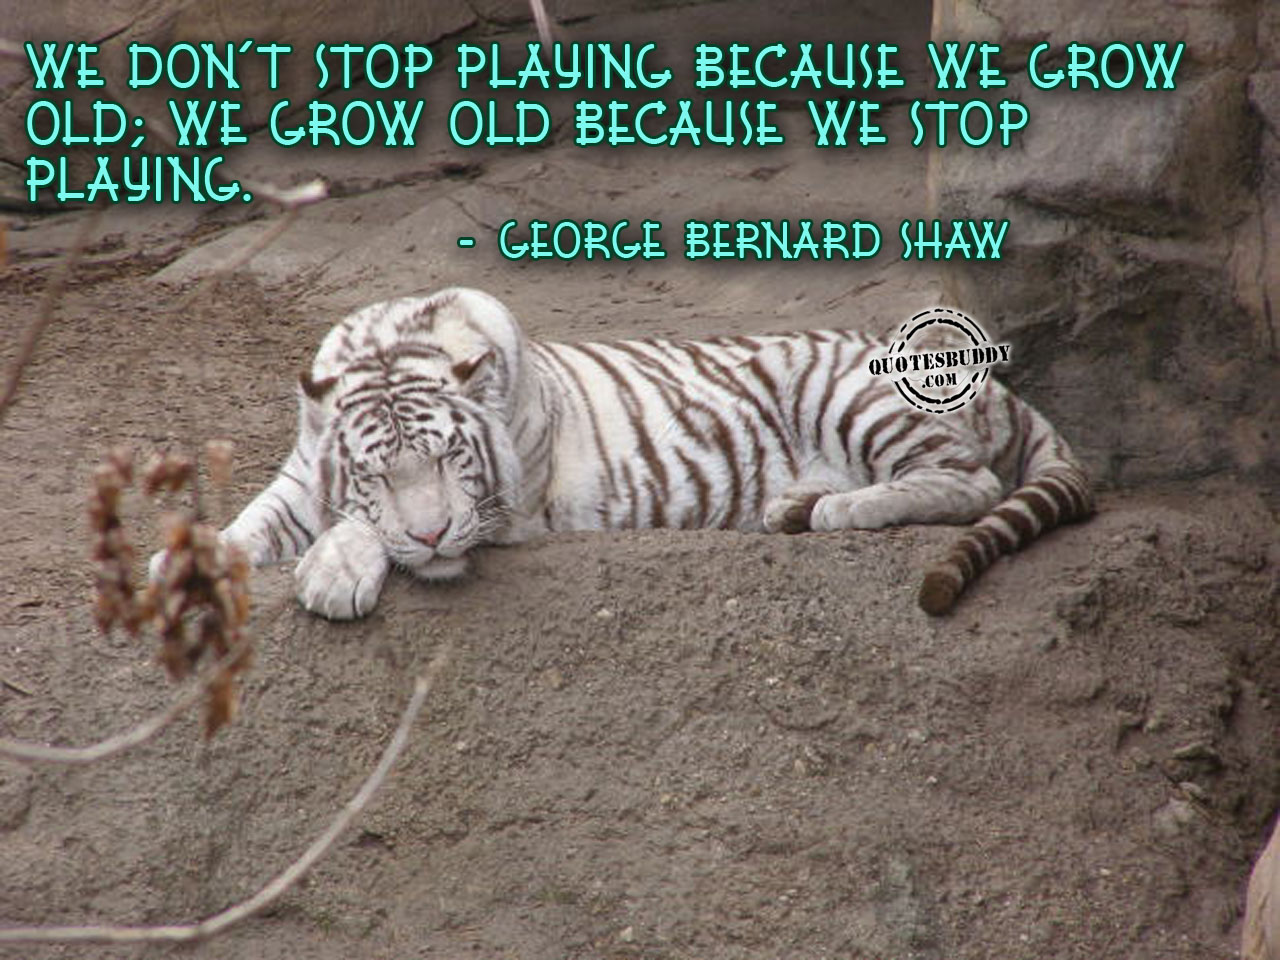 We don't stop playing because we grow old, we grow old because we stop playing - George Bernard Shaw